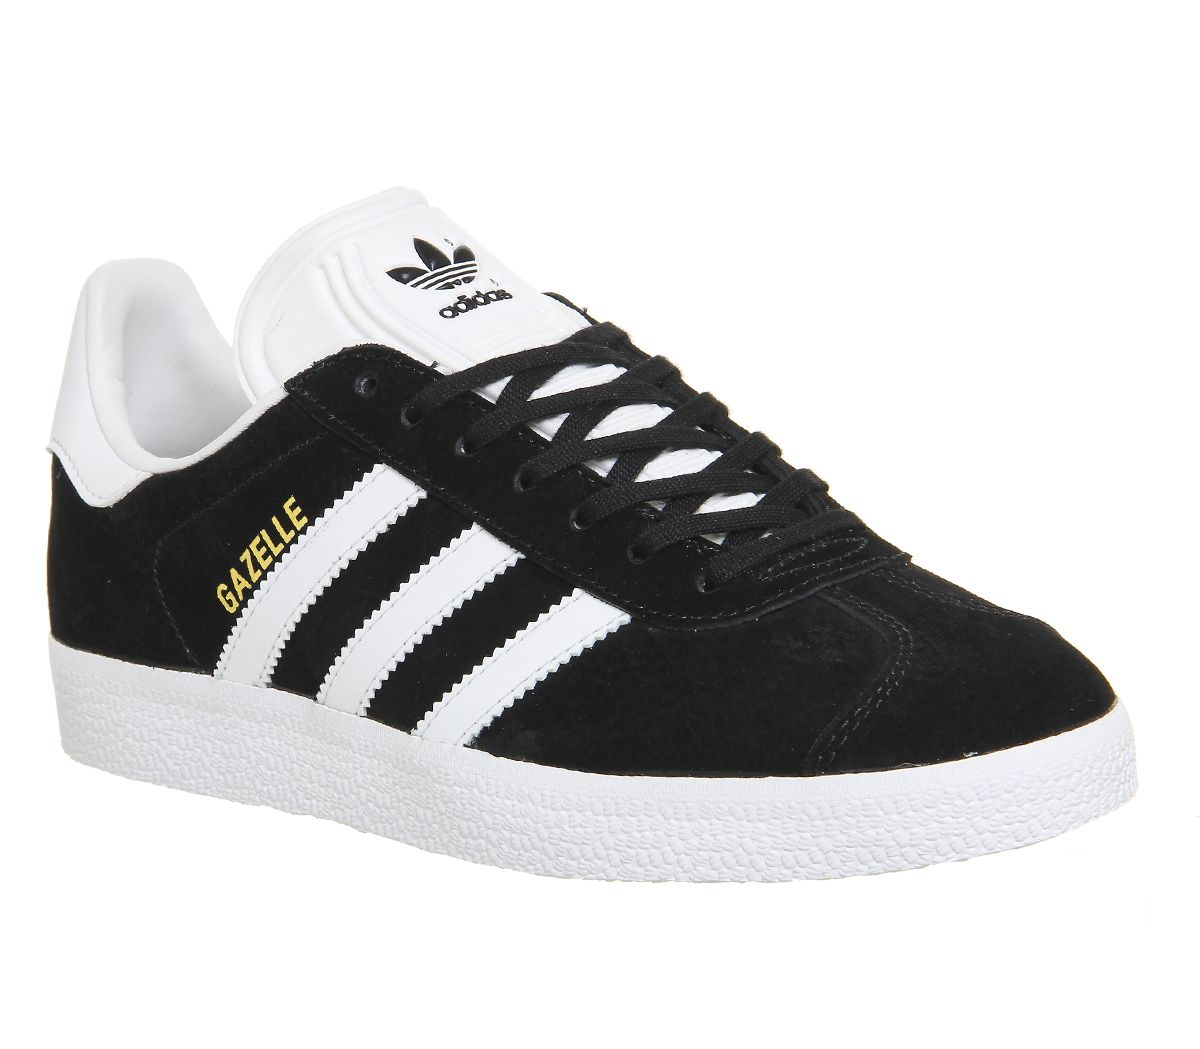 the best attitude 0bbe8 15fef Sentinel Thumbnail 2. Sentinel Adidas Gazelle Core Black White Trainers  Shoes